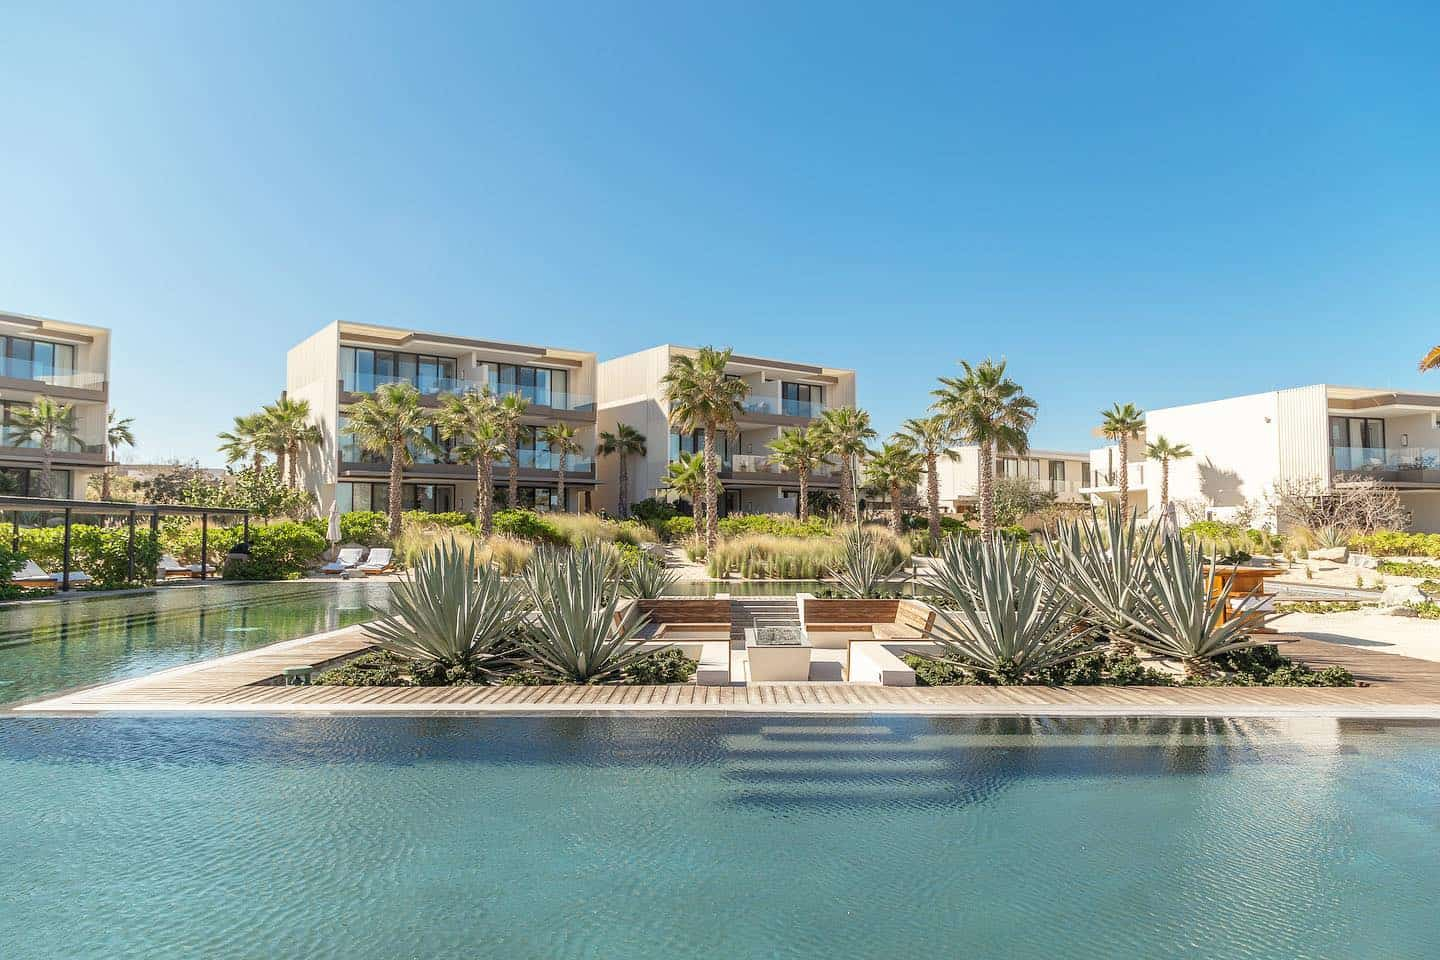 The most luxurious place to stay on the East Cape is the Four Seasons Resort Los Cabos at Costa Palmas.